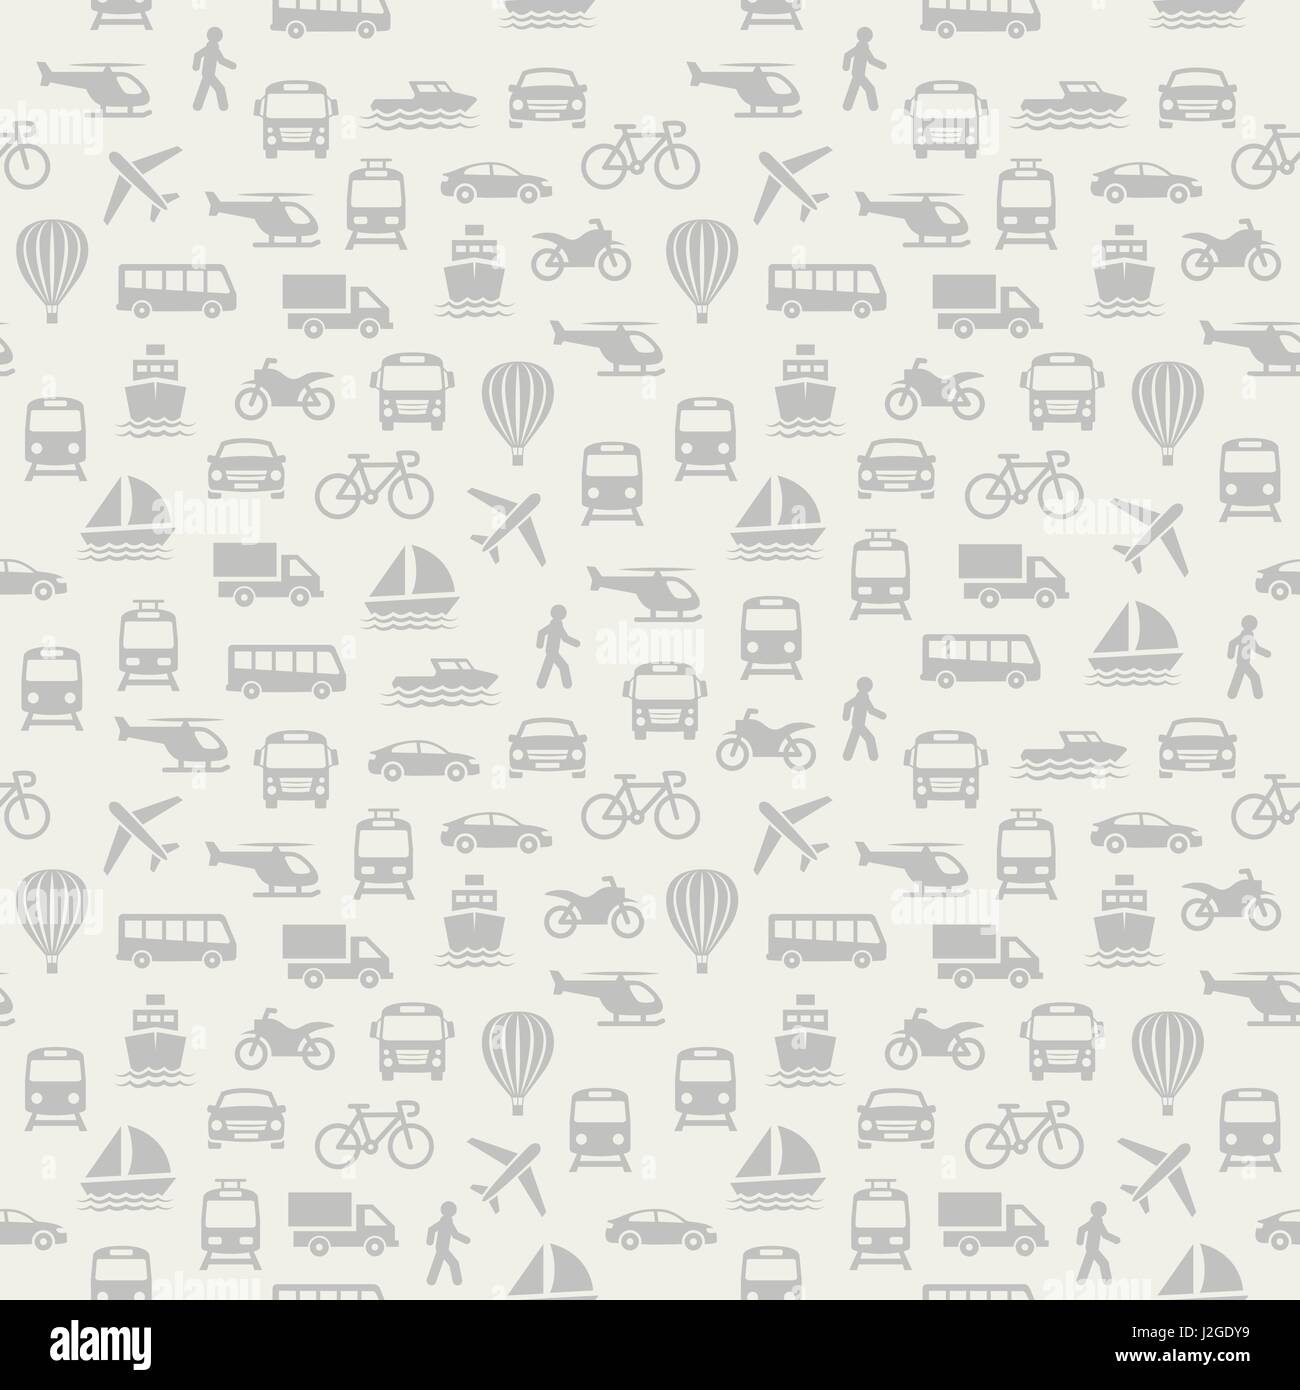 transport seamless pattern background with icons stock vector art